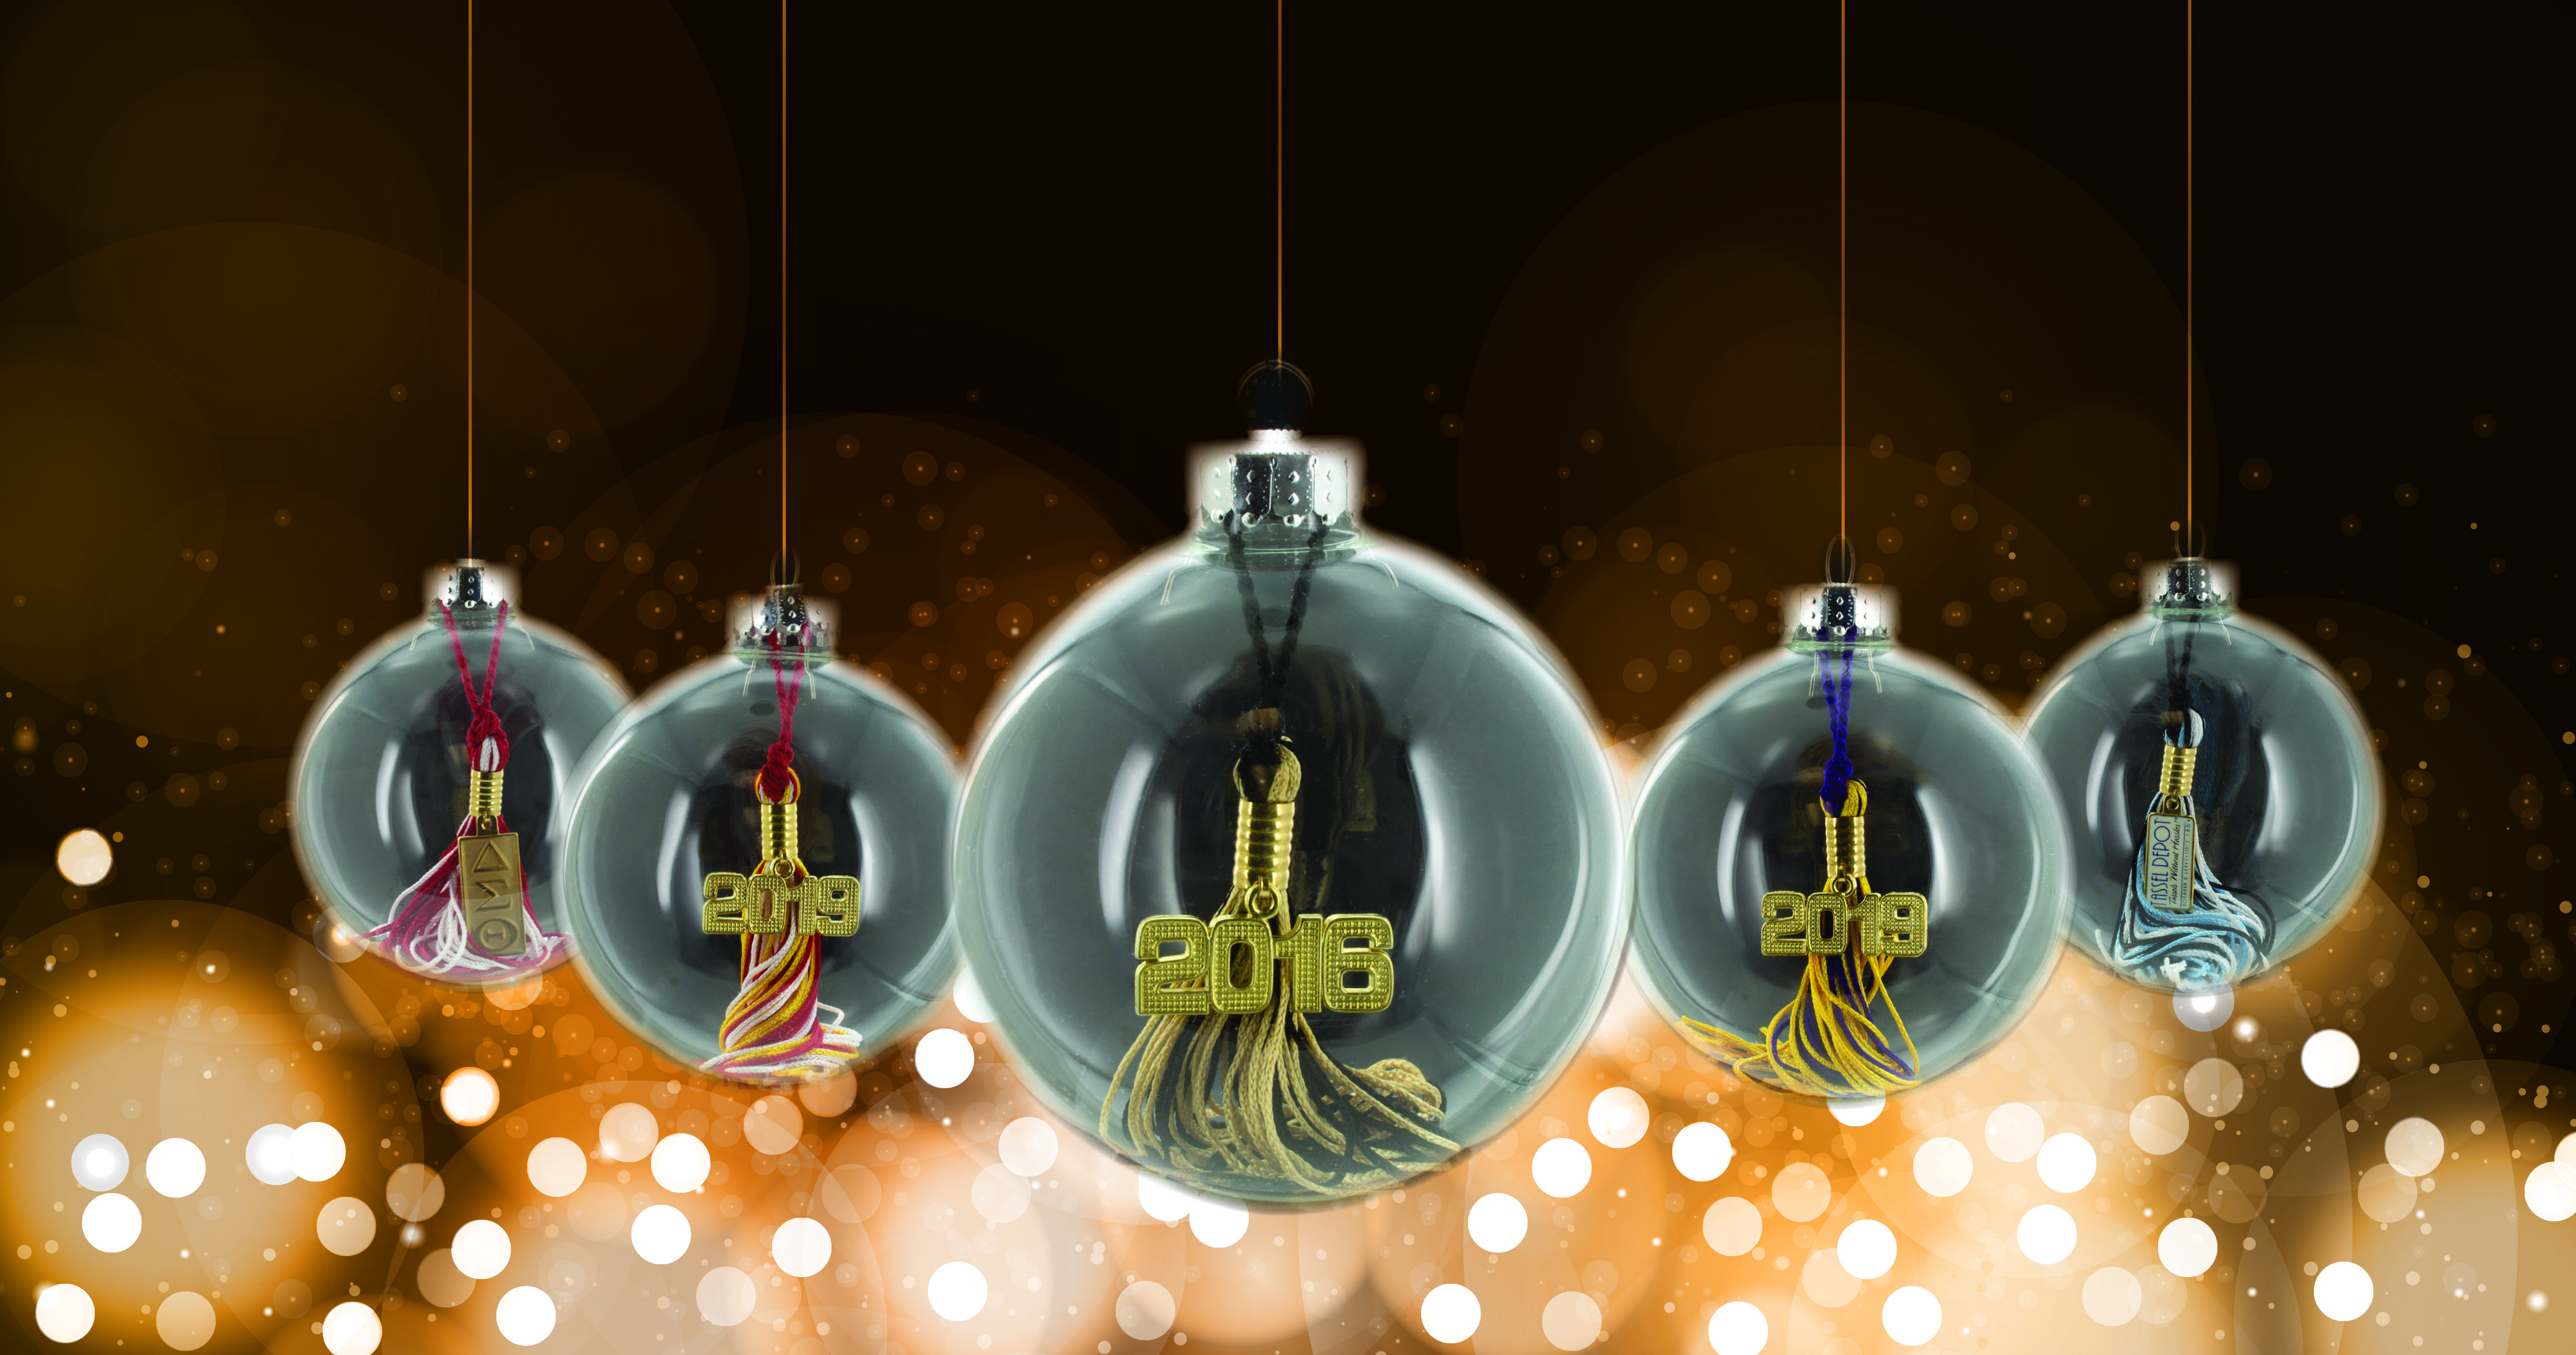 For a limited time, Tassel Depot®, is offering an incentive program on its popular graduation tassel ornaments. If you order on-line before November 1, 2016, you will receive 10% off. These ornaments can be  customized with any school color and year date.  Use Promo Code  gradorn1016 during checkout to ensure 10% off!